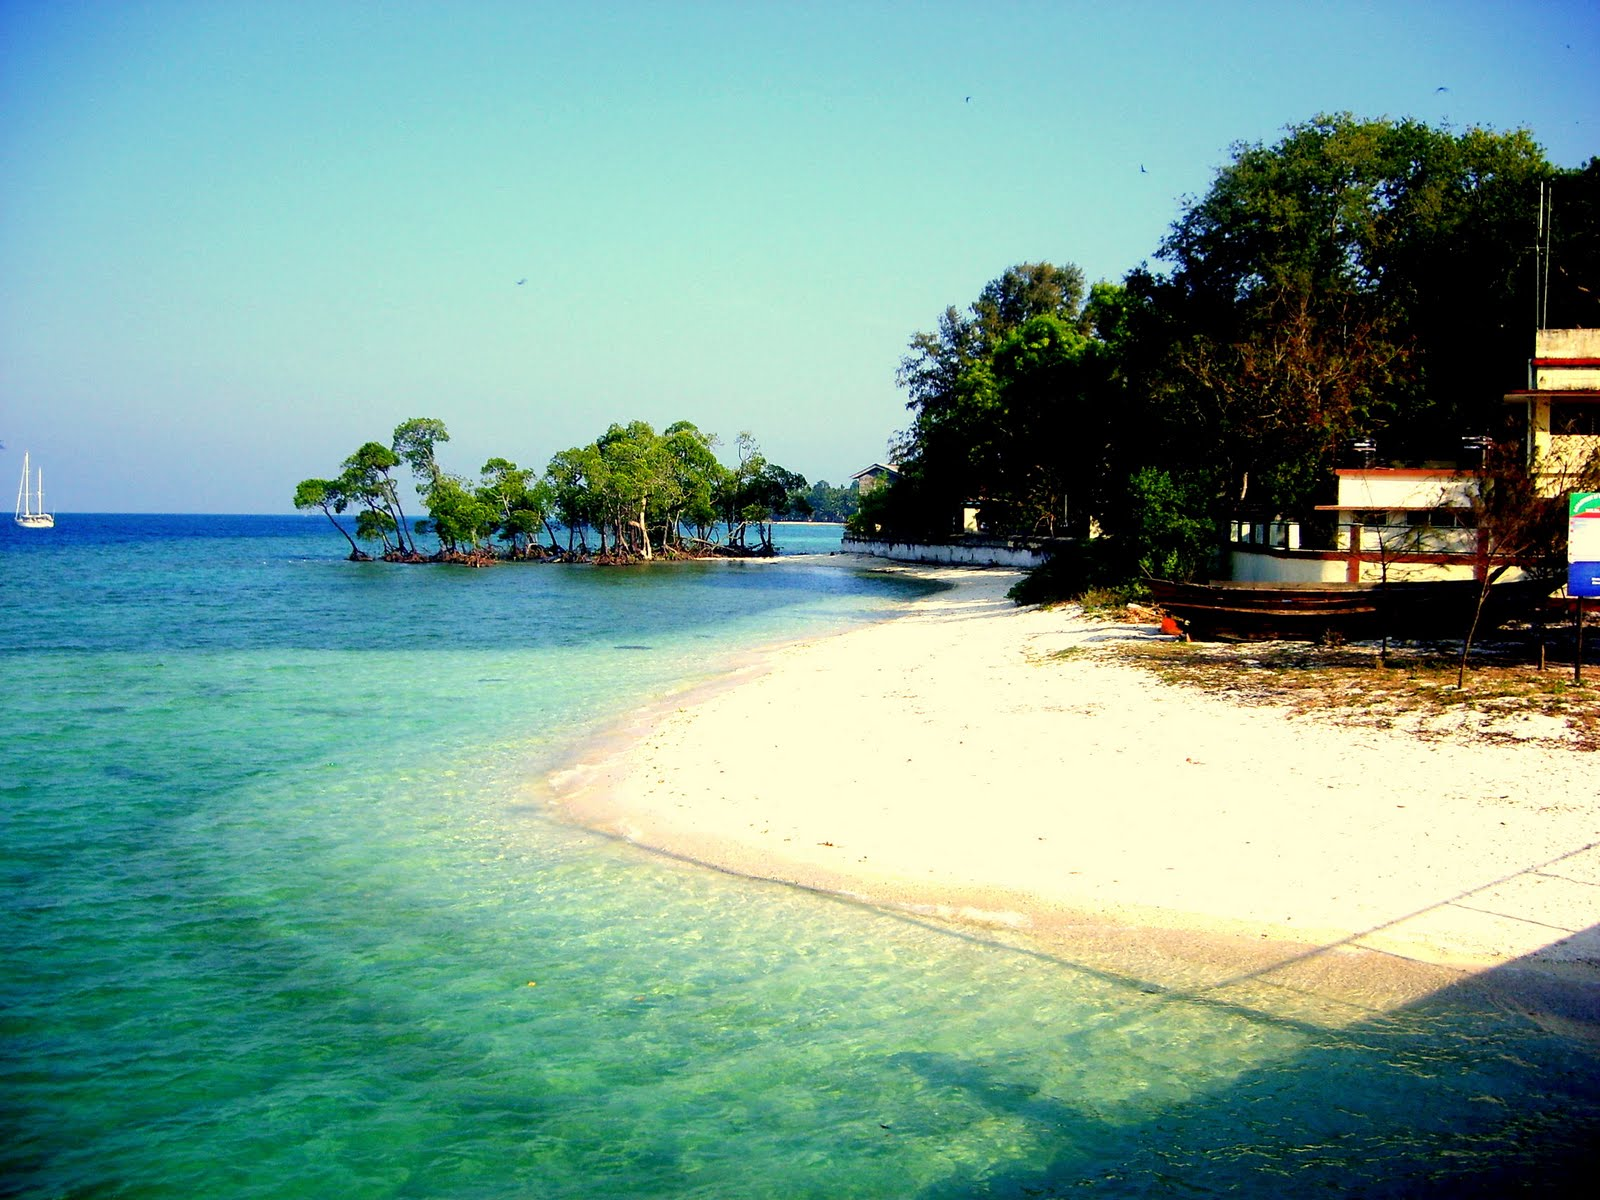 andaman islands The andaman islands form an archipelago in the bay of bengal between india, to the west, and myanmar, to the north and east most are part of the andaman and.